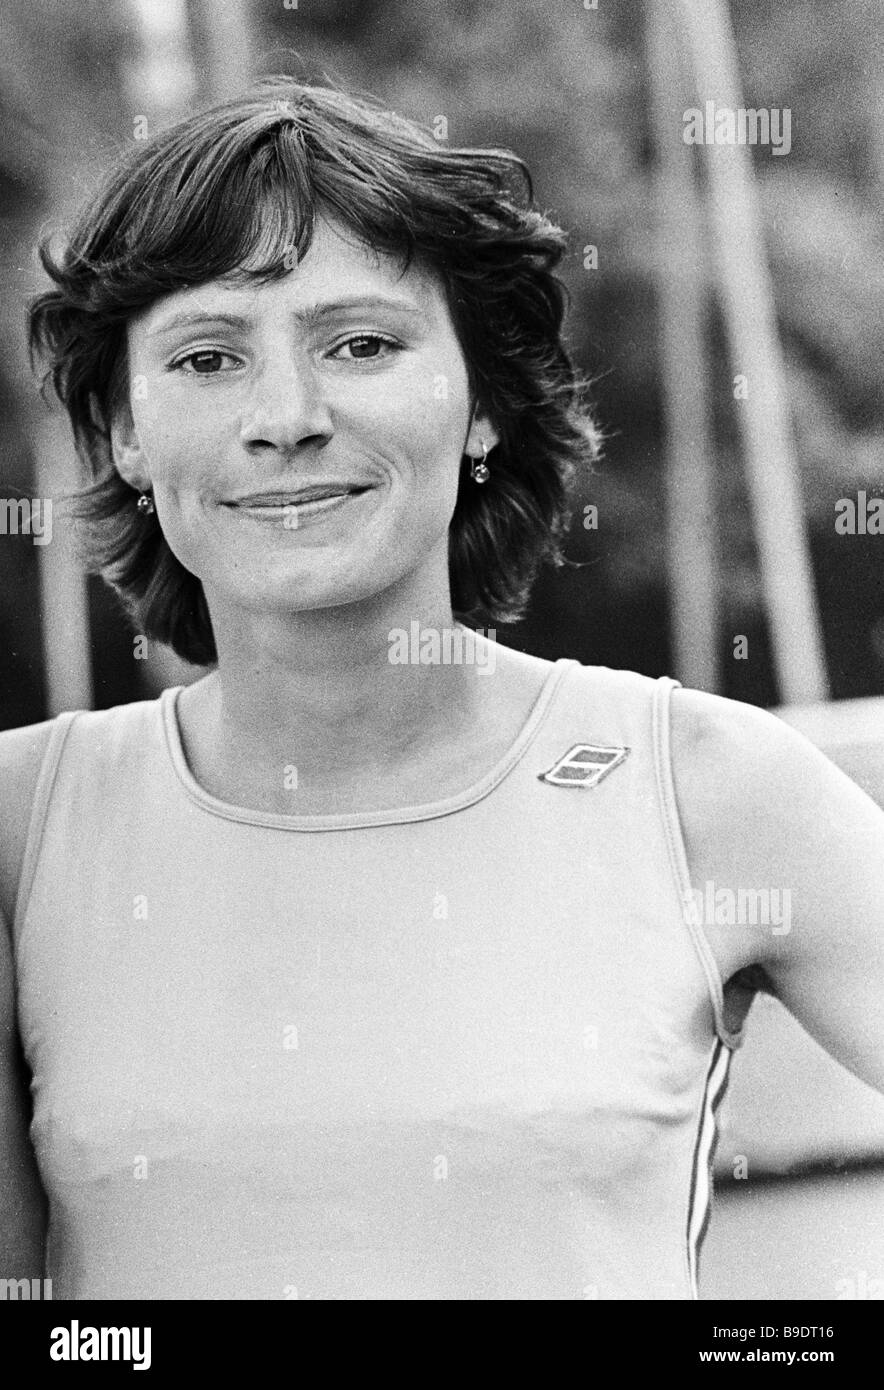 Nadezhda Poryvkina 1979 USSR champion in the 800 meter run - Stock Image